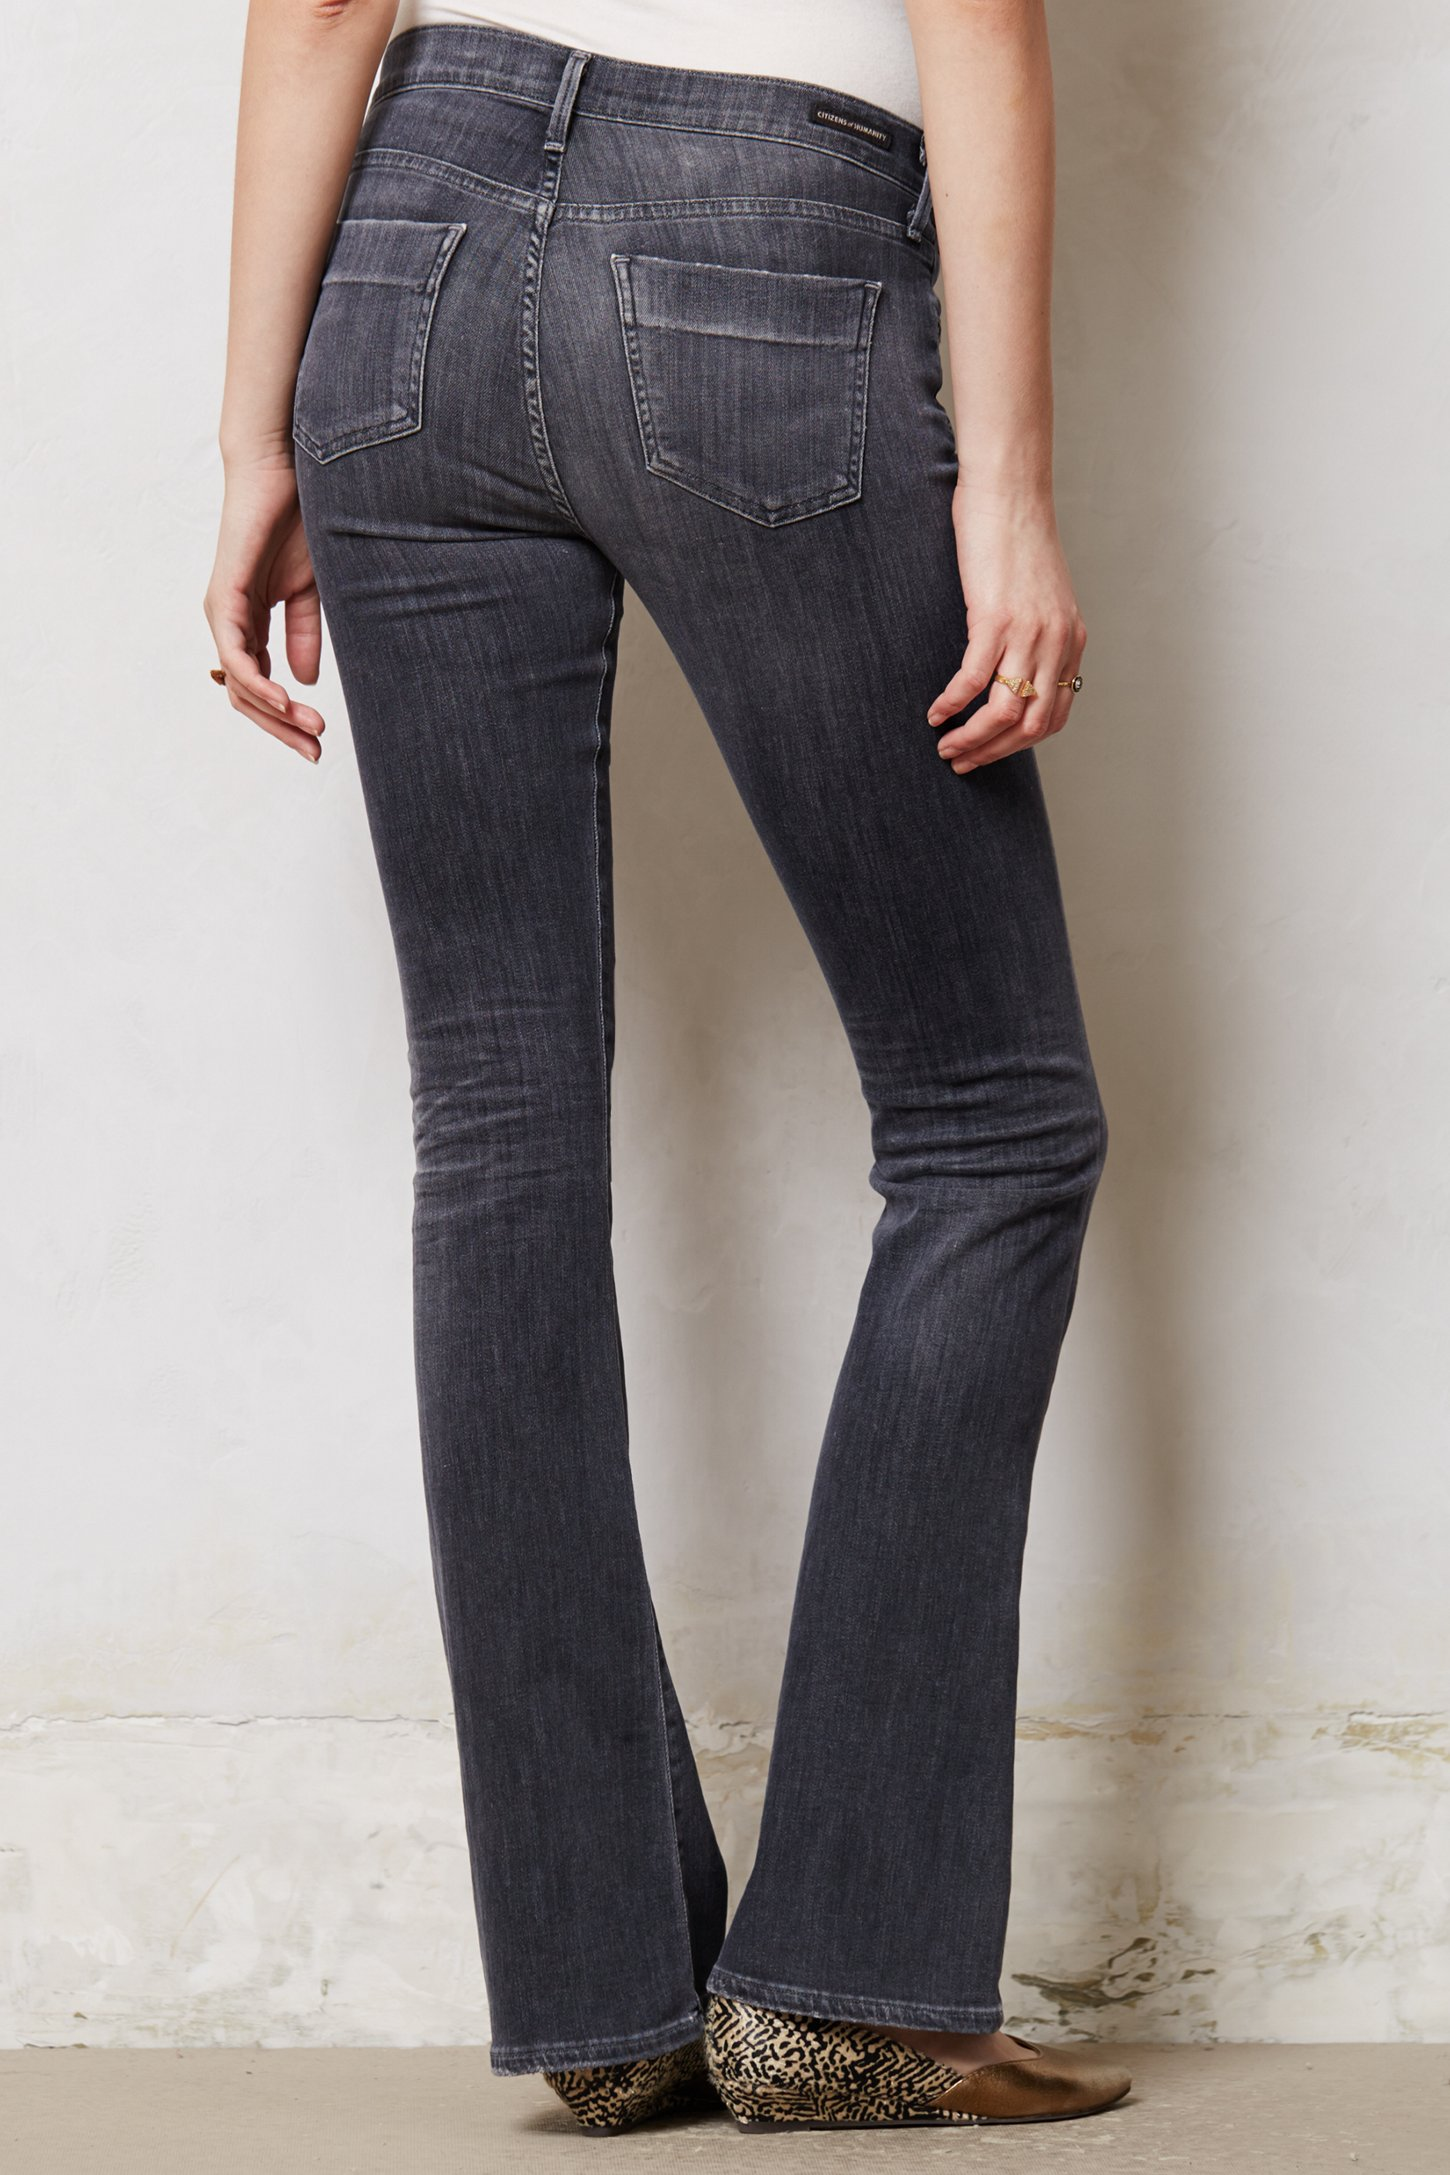 Citizens of humanity Emmanuelle Slim Bootcut Jeans in Gray | Lyst